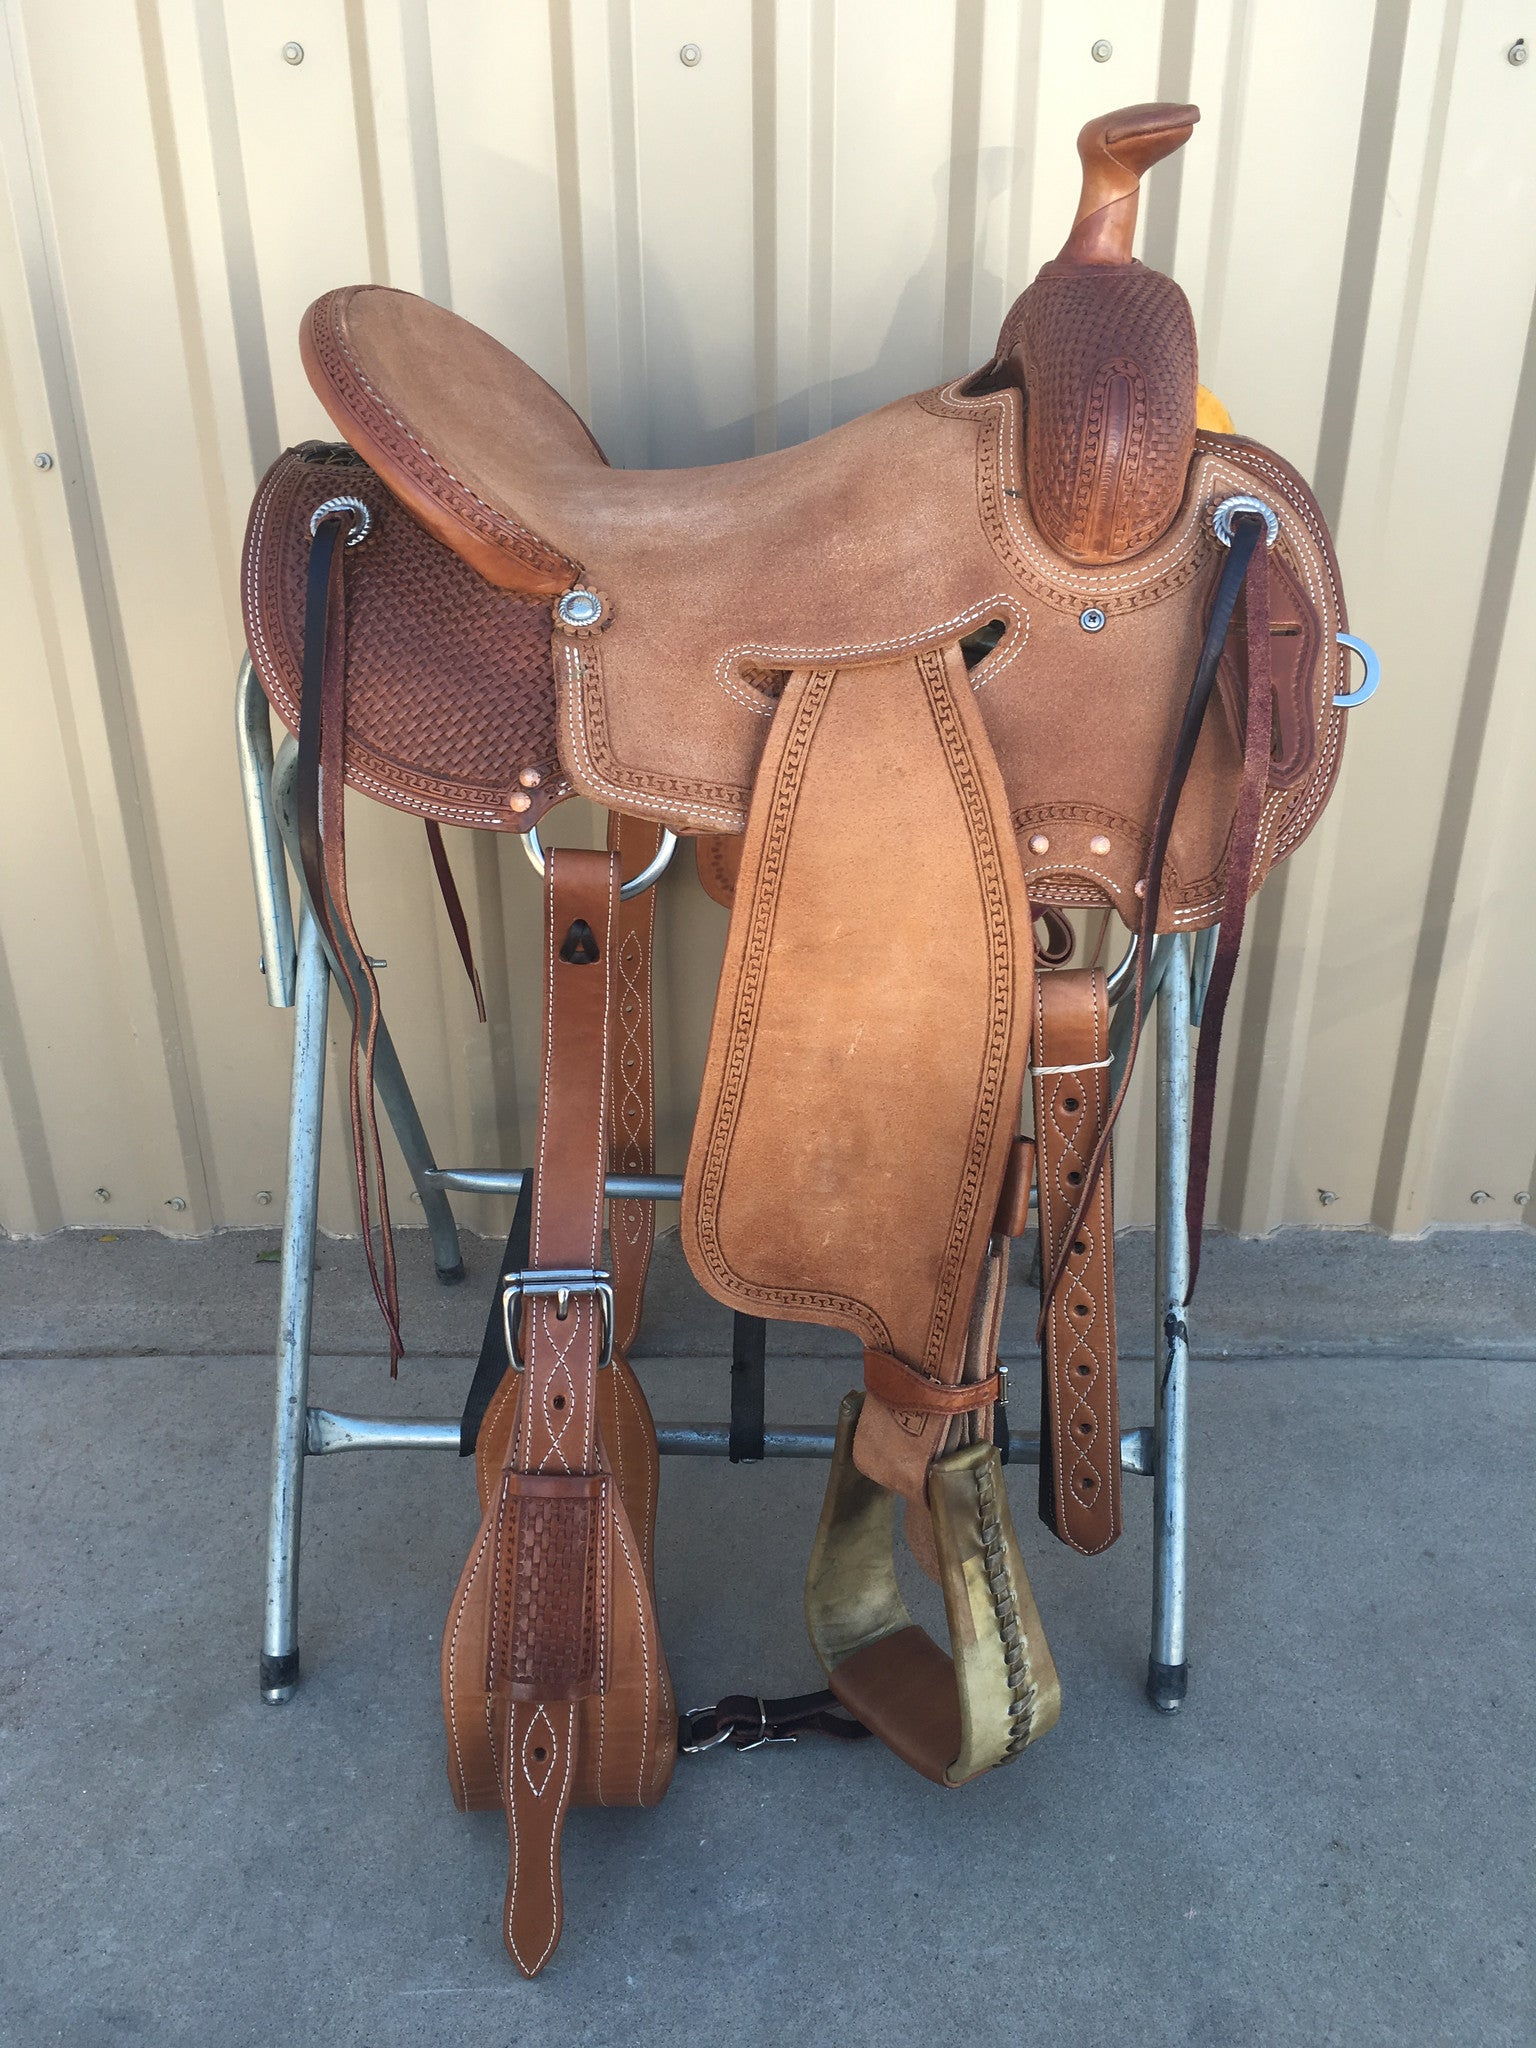 Corriente Strip Down Team Roping Saddle SB119C - The Sale Barn - 1